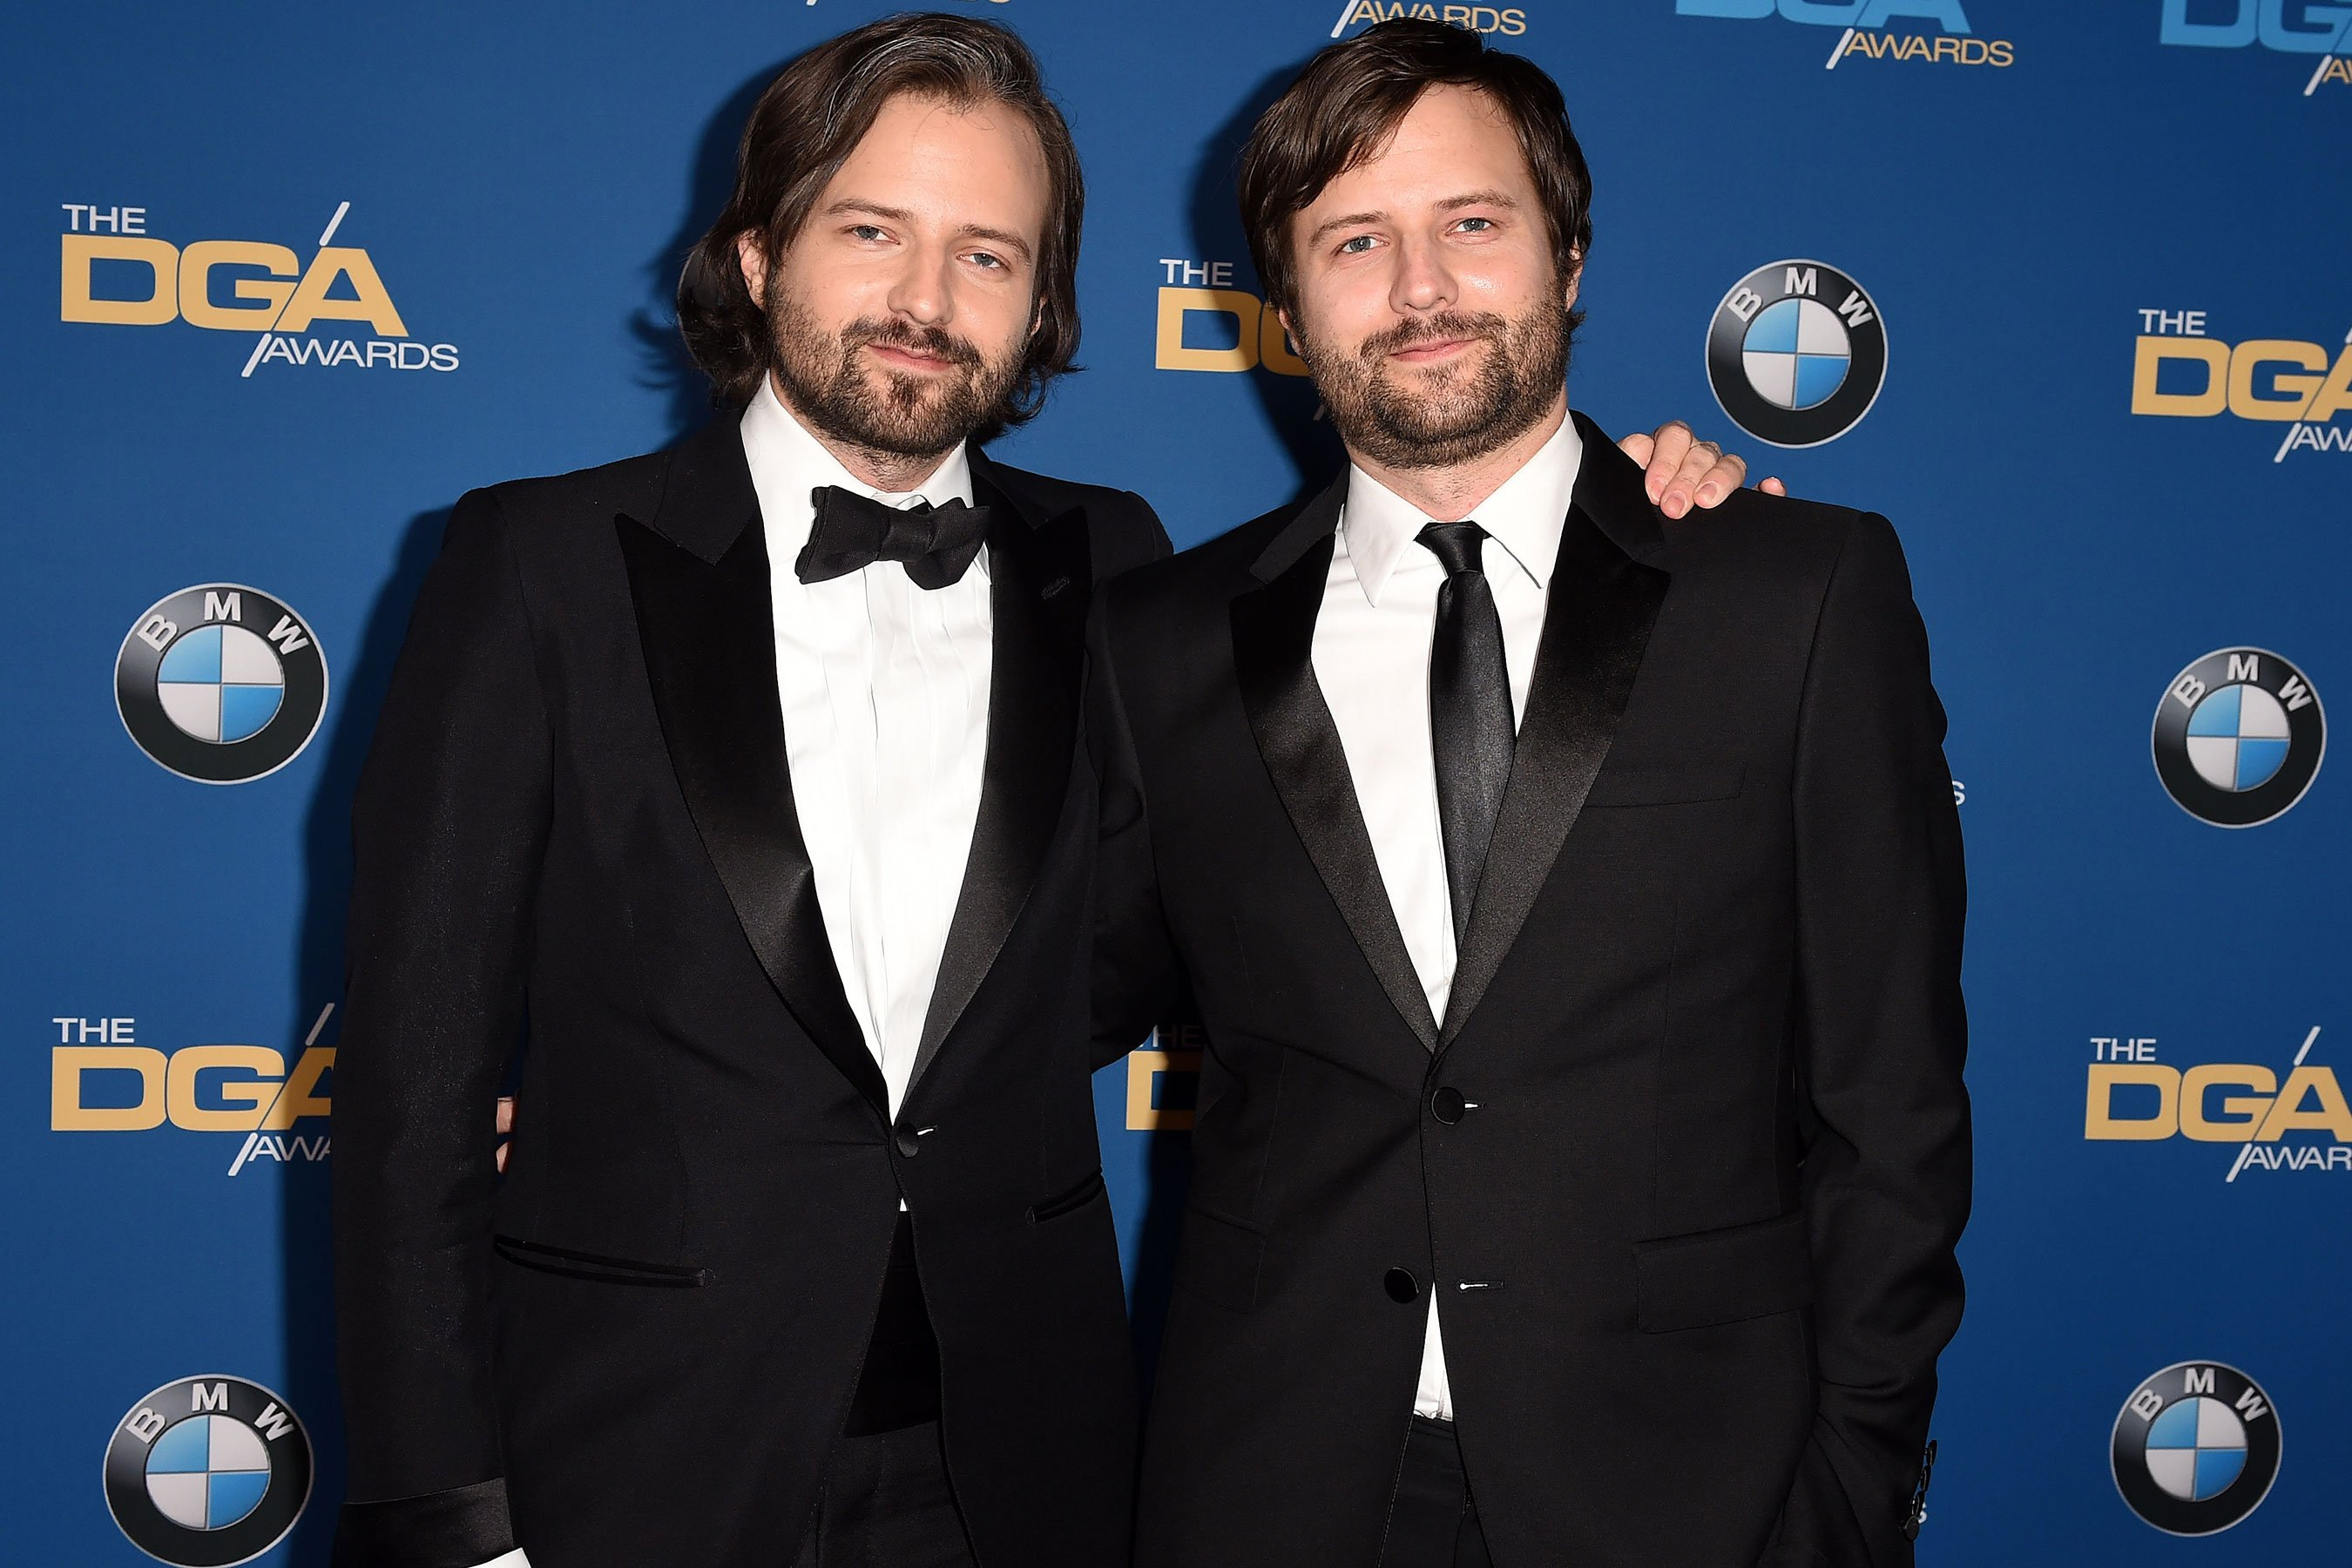 Stranger Things: Duffer brothers accused of verbal abuse, Netflix finds no wrongdoing